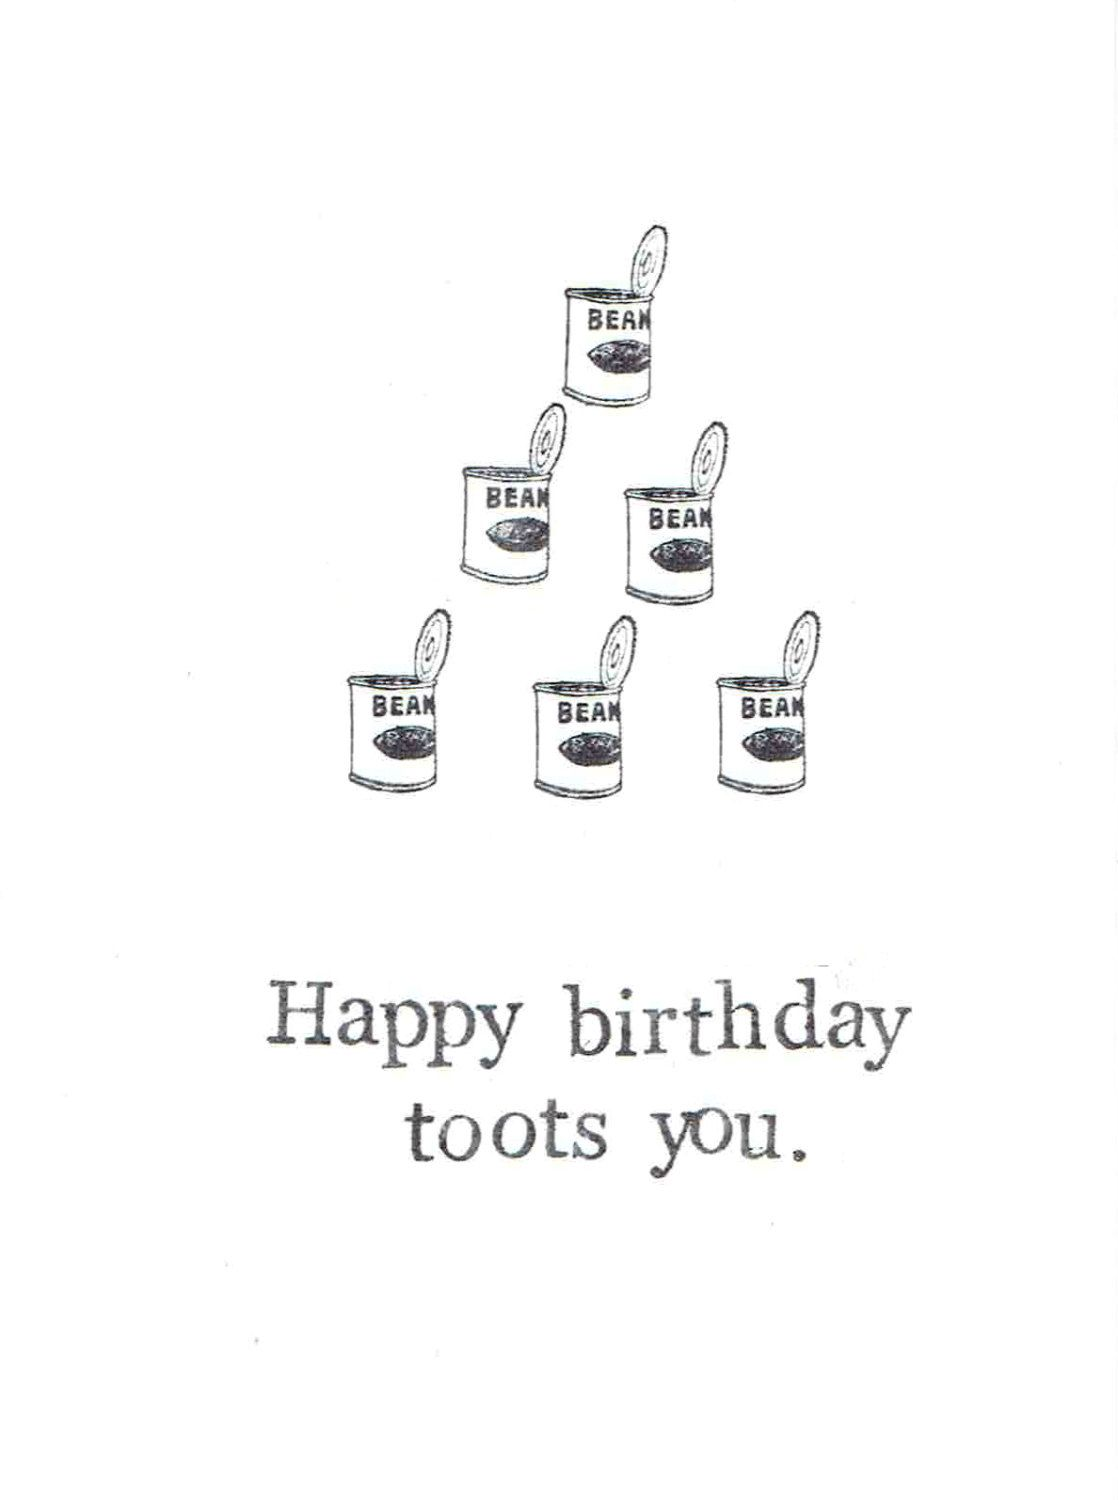 Happy Birthday Toots You Card – Bean Birthday Card